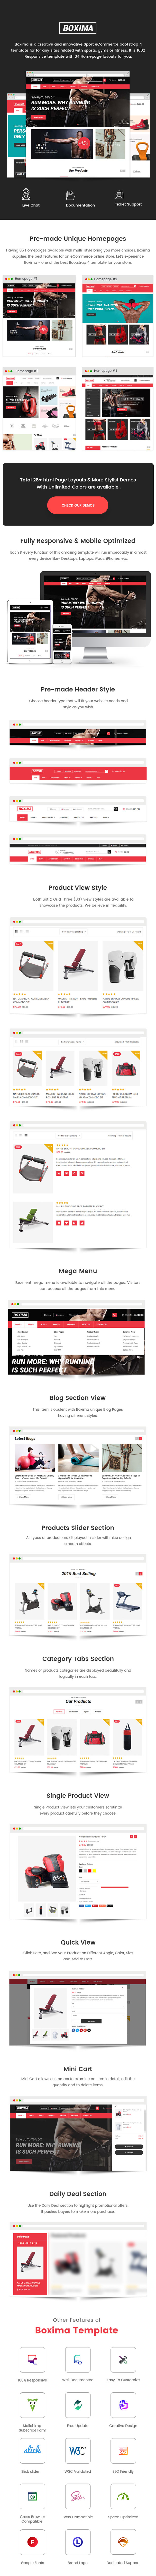 Boxima - Gym Fitness Equipment Store HTML Template - 1